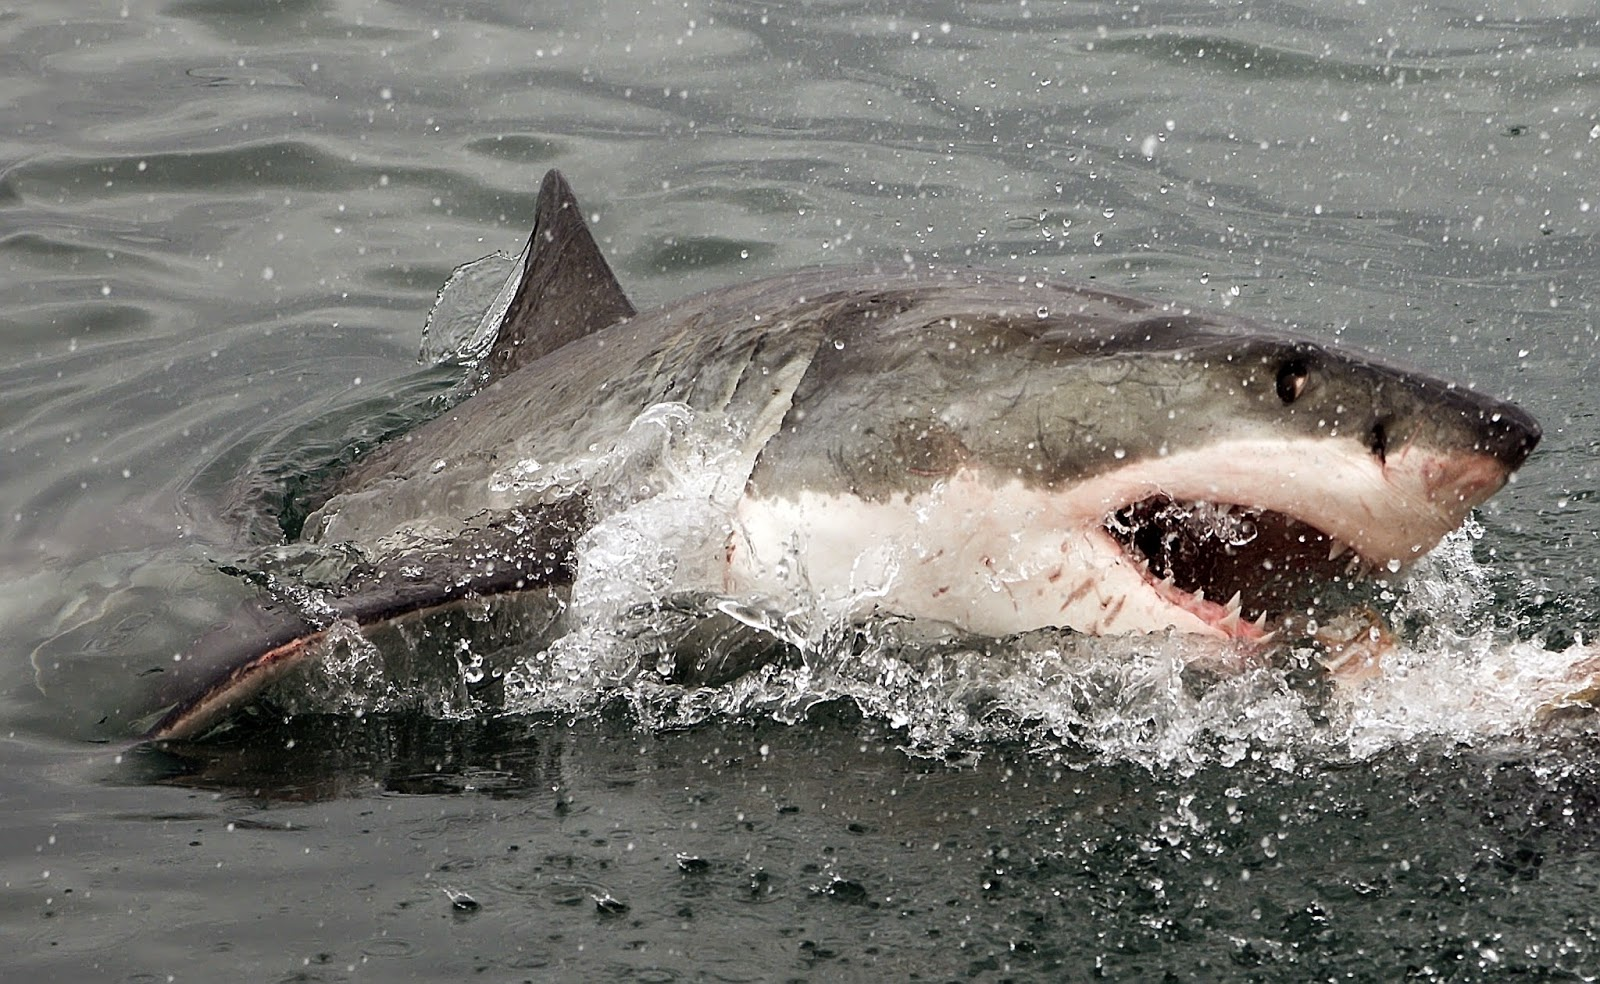 Fierce great white shark breaking the surface